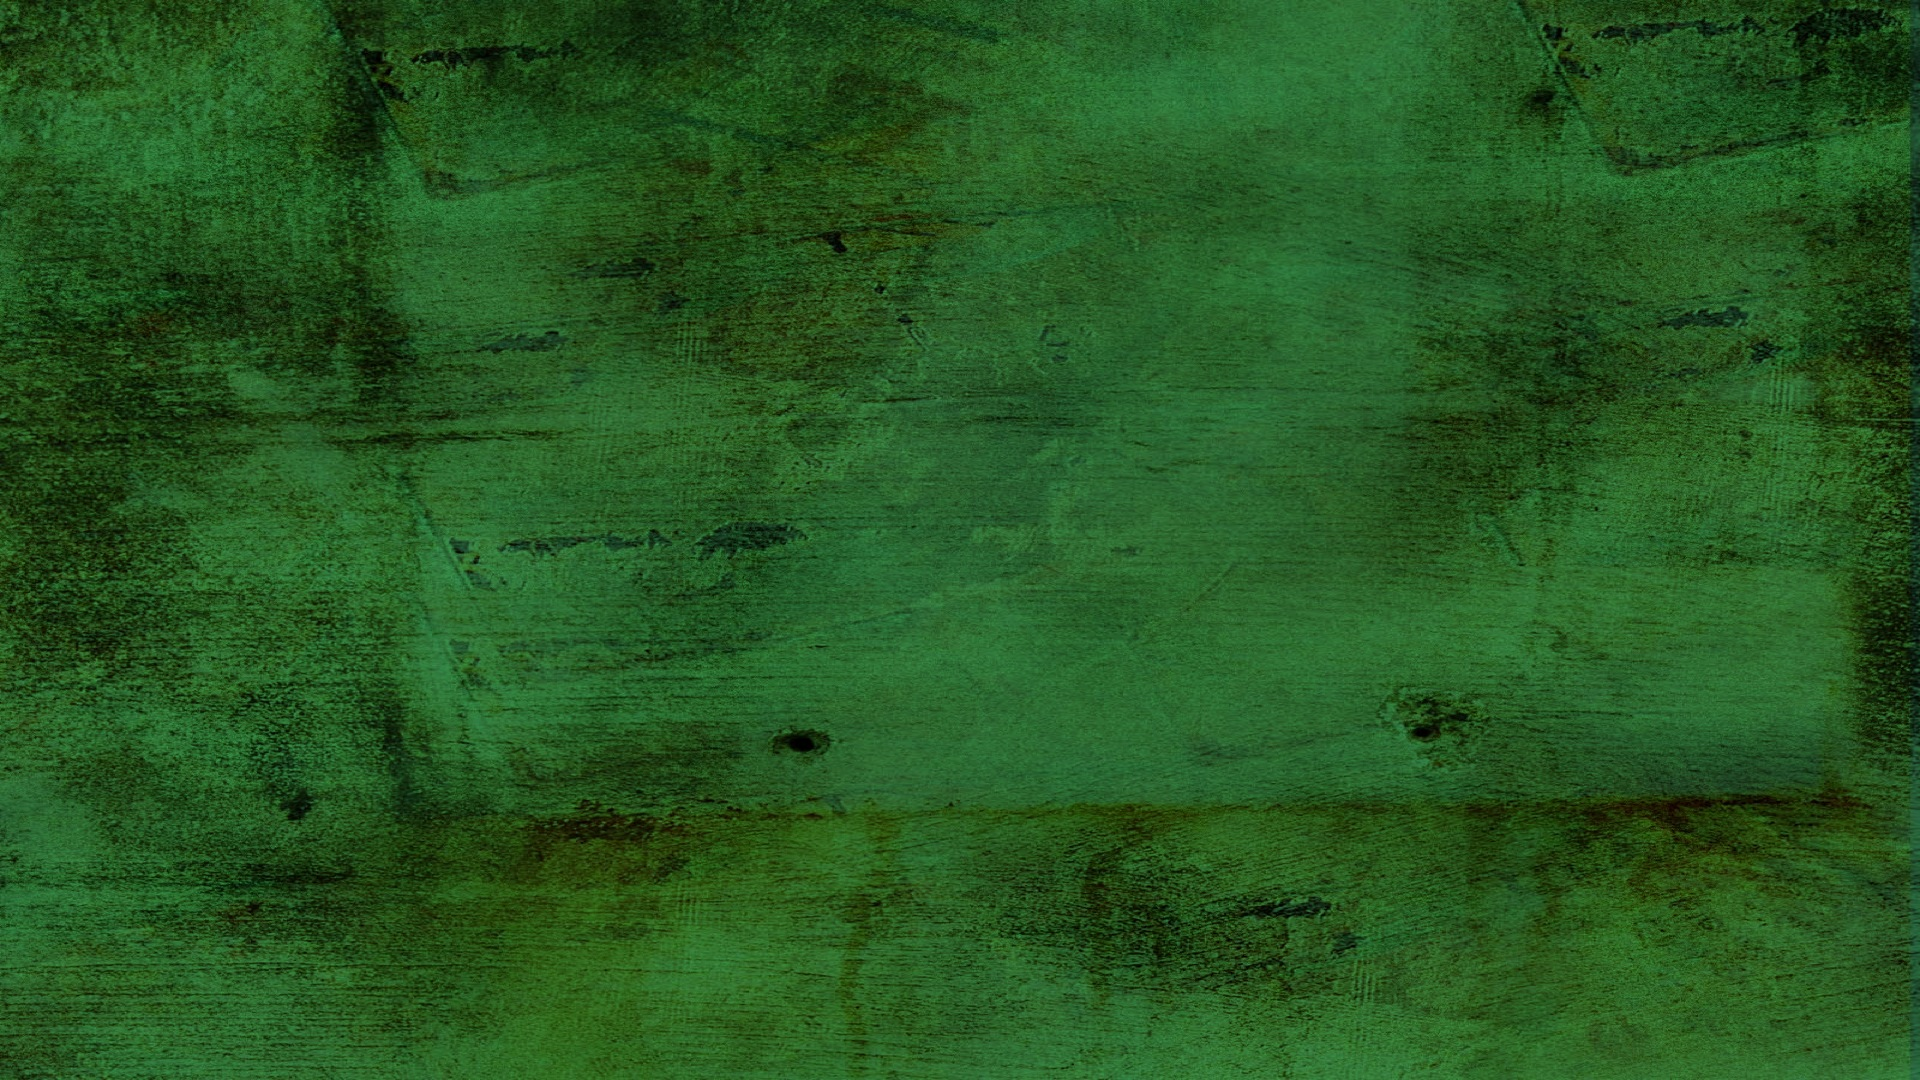 green texture wallpaper from - photo #31